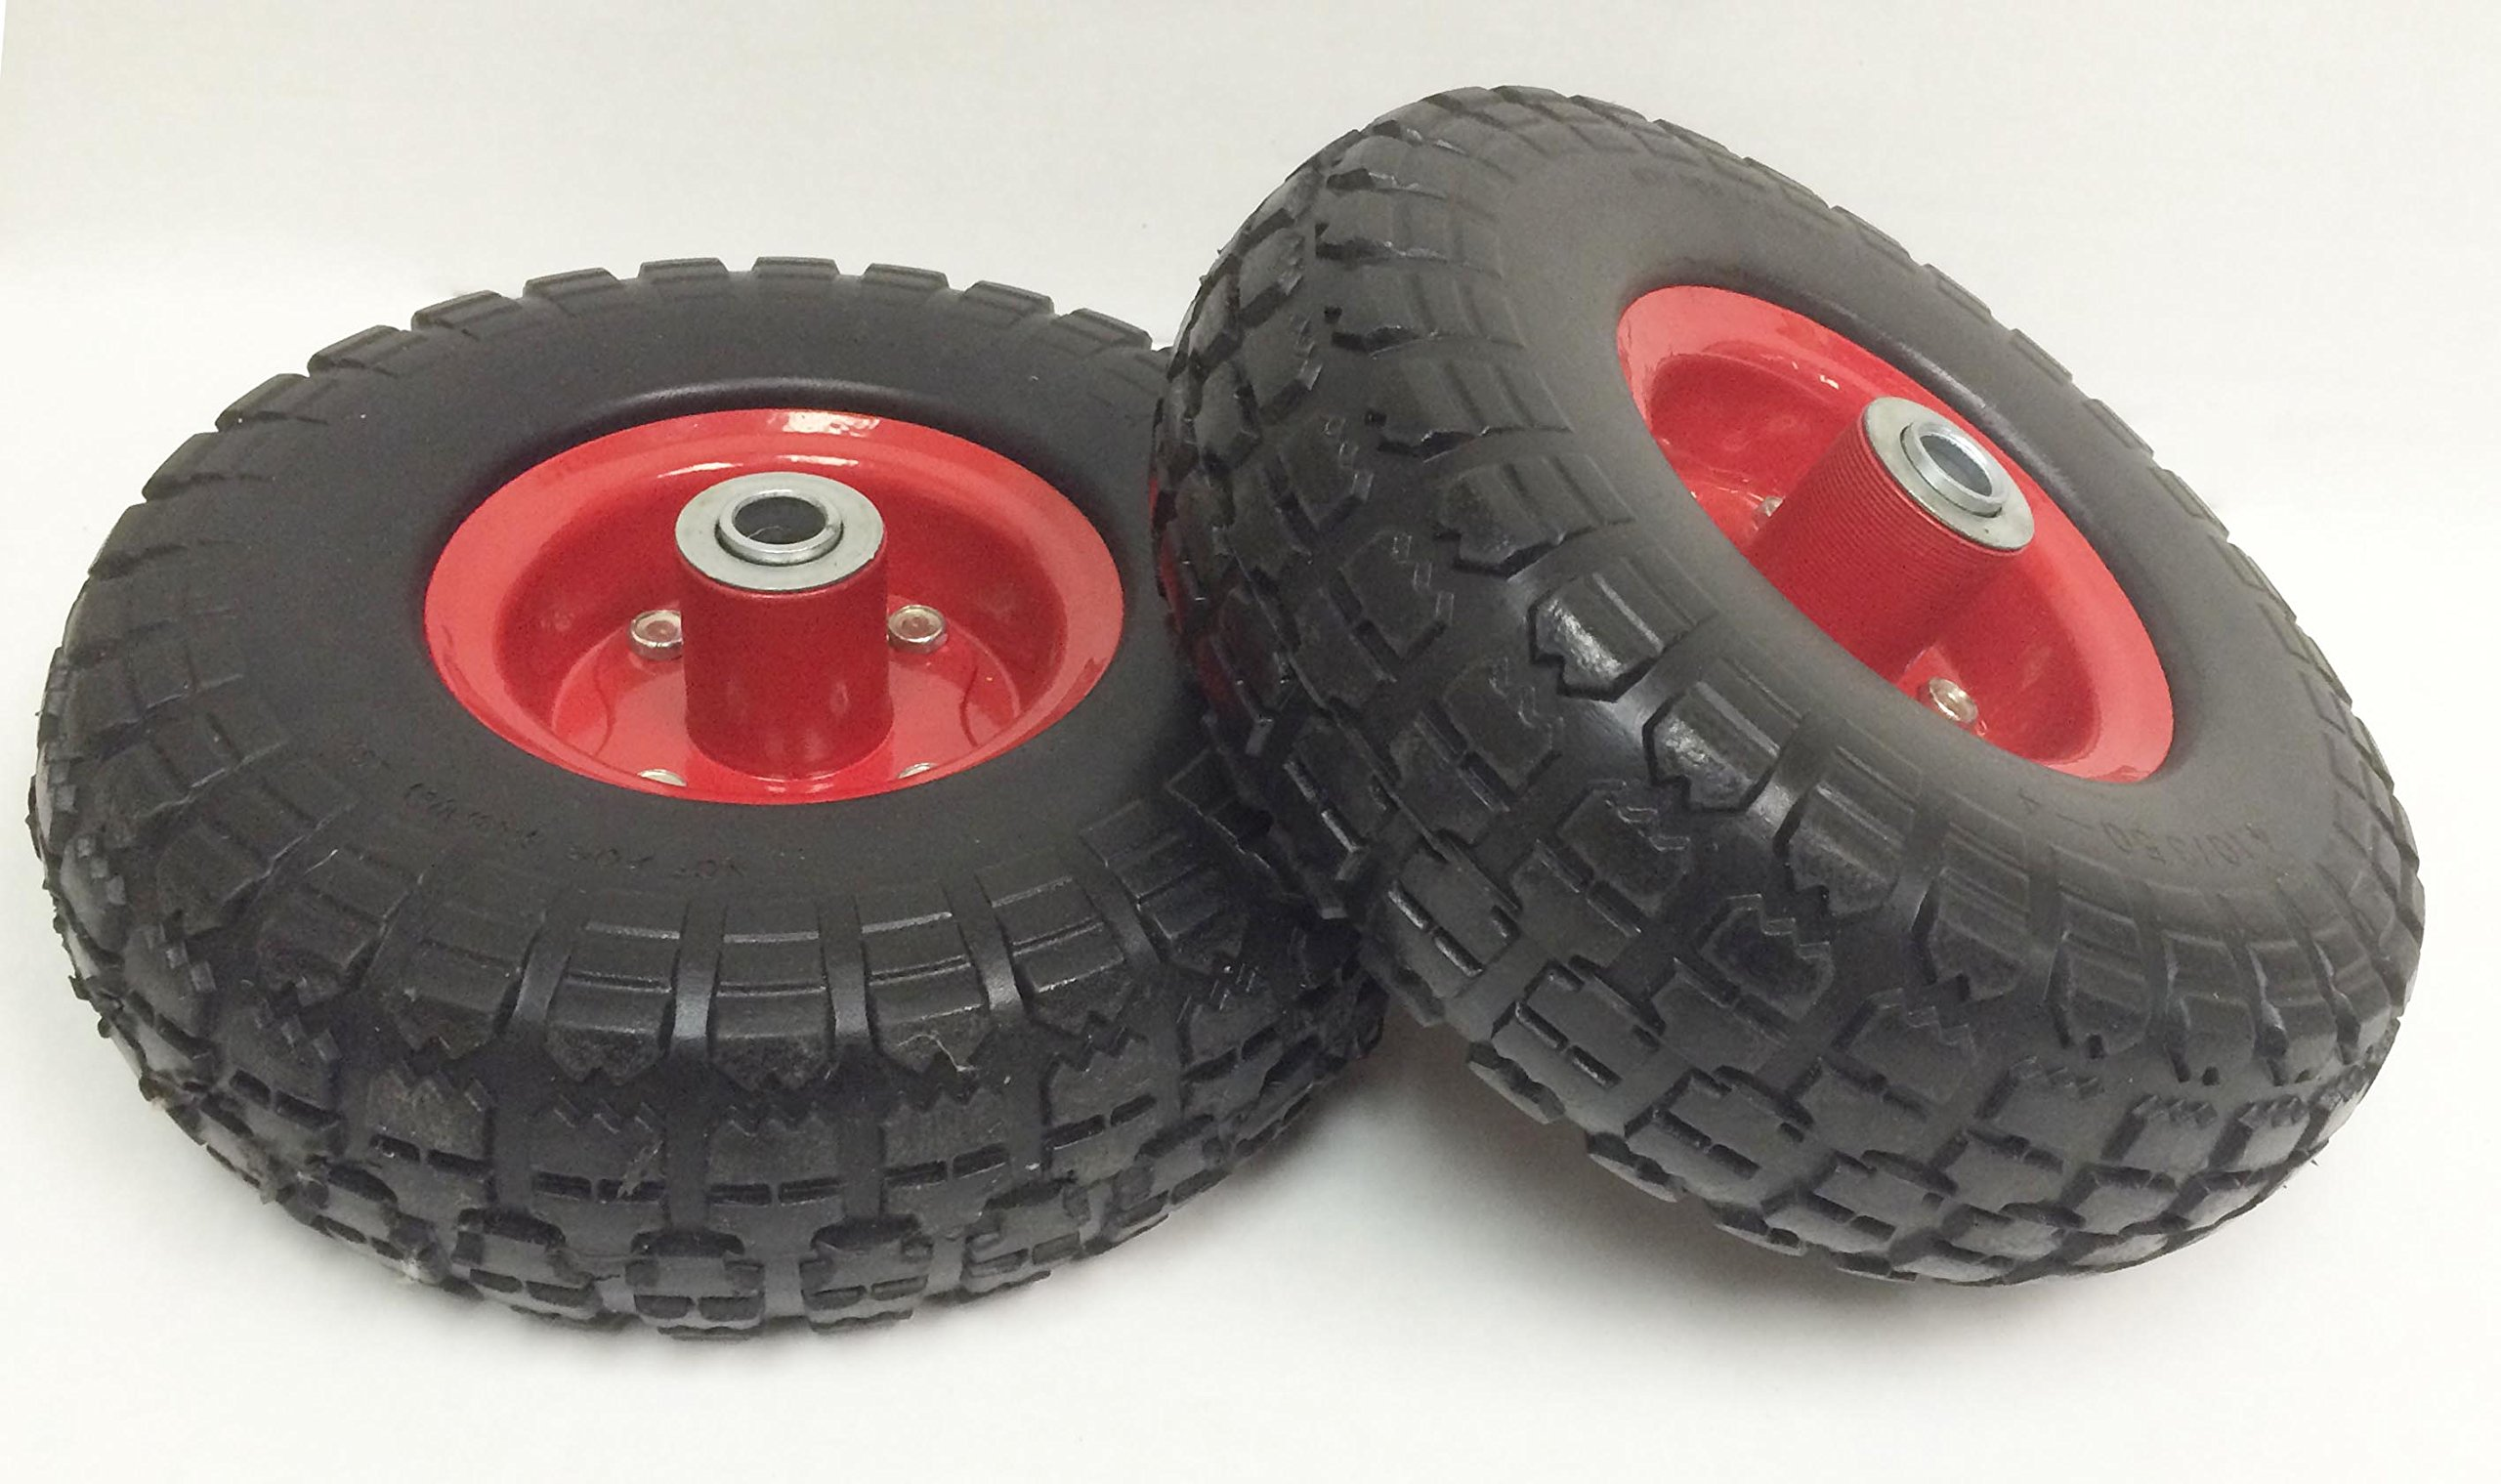 Libra 2 New 10'' Flat Free Solid Tire Wheel for Dolly Handtruck Cart -27019